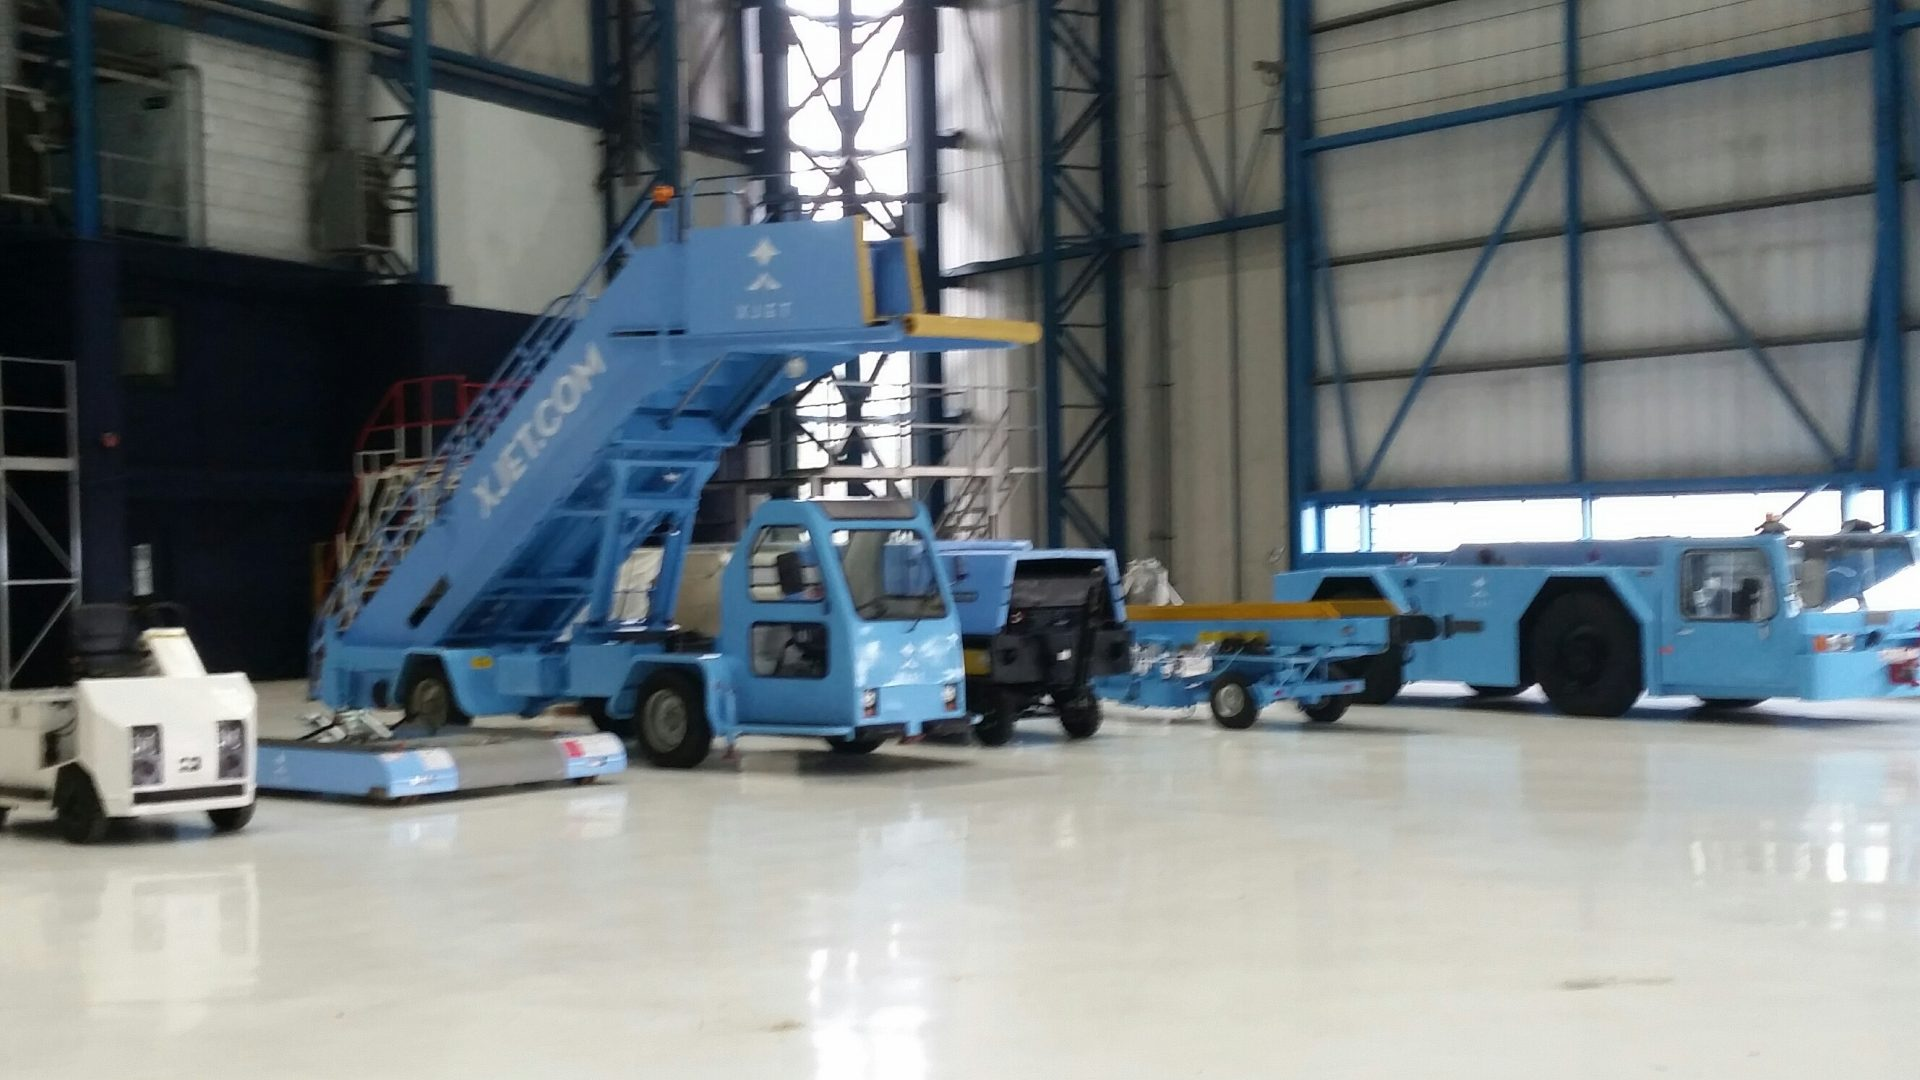 Xjet Commercial Vehicle Spraying - stairs